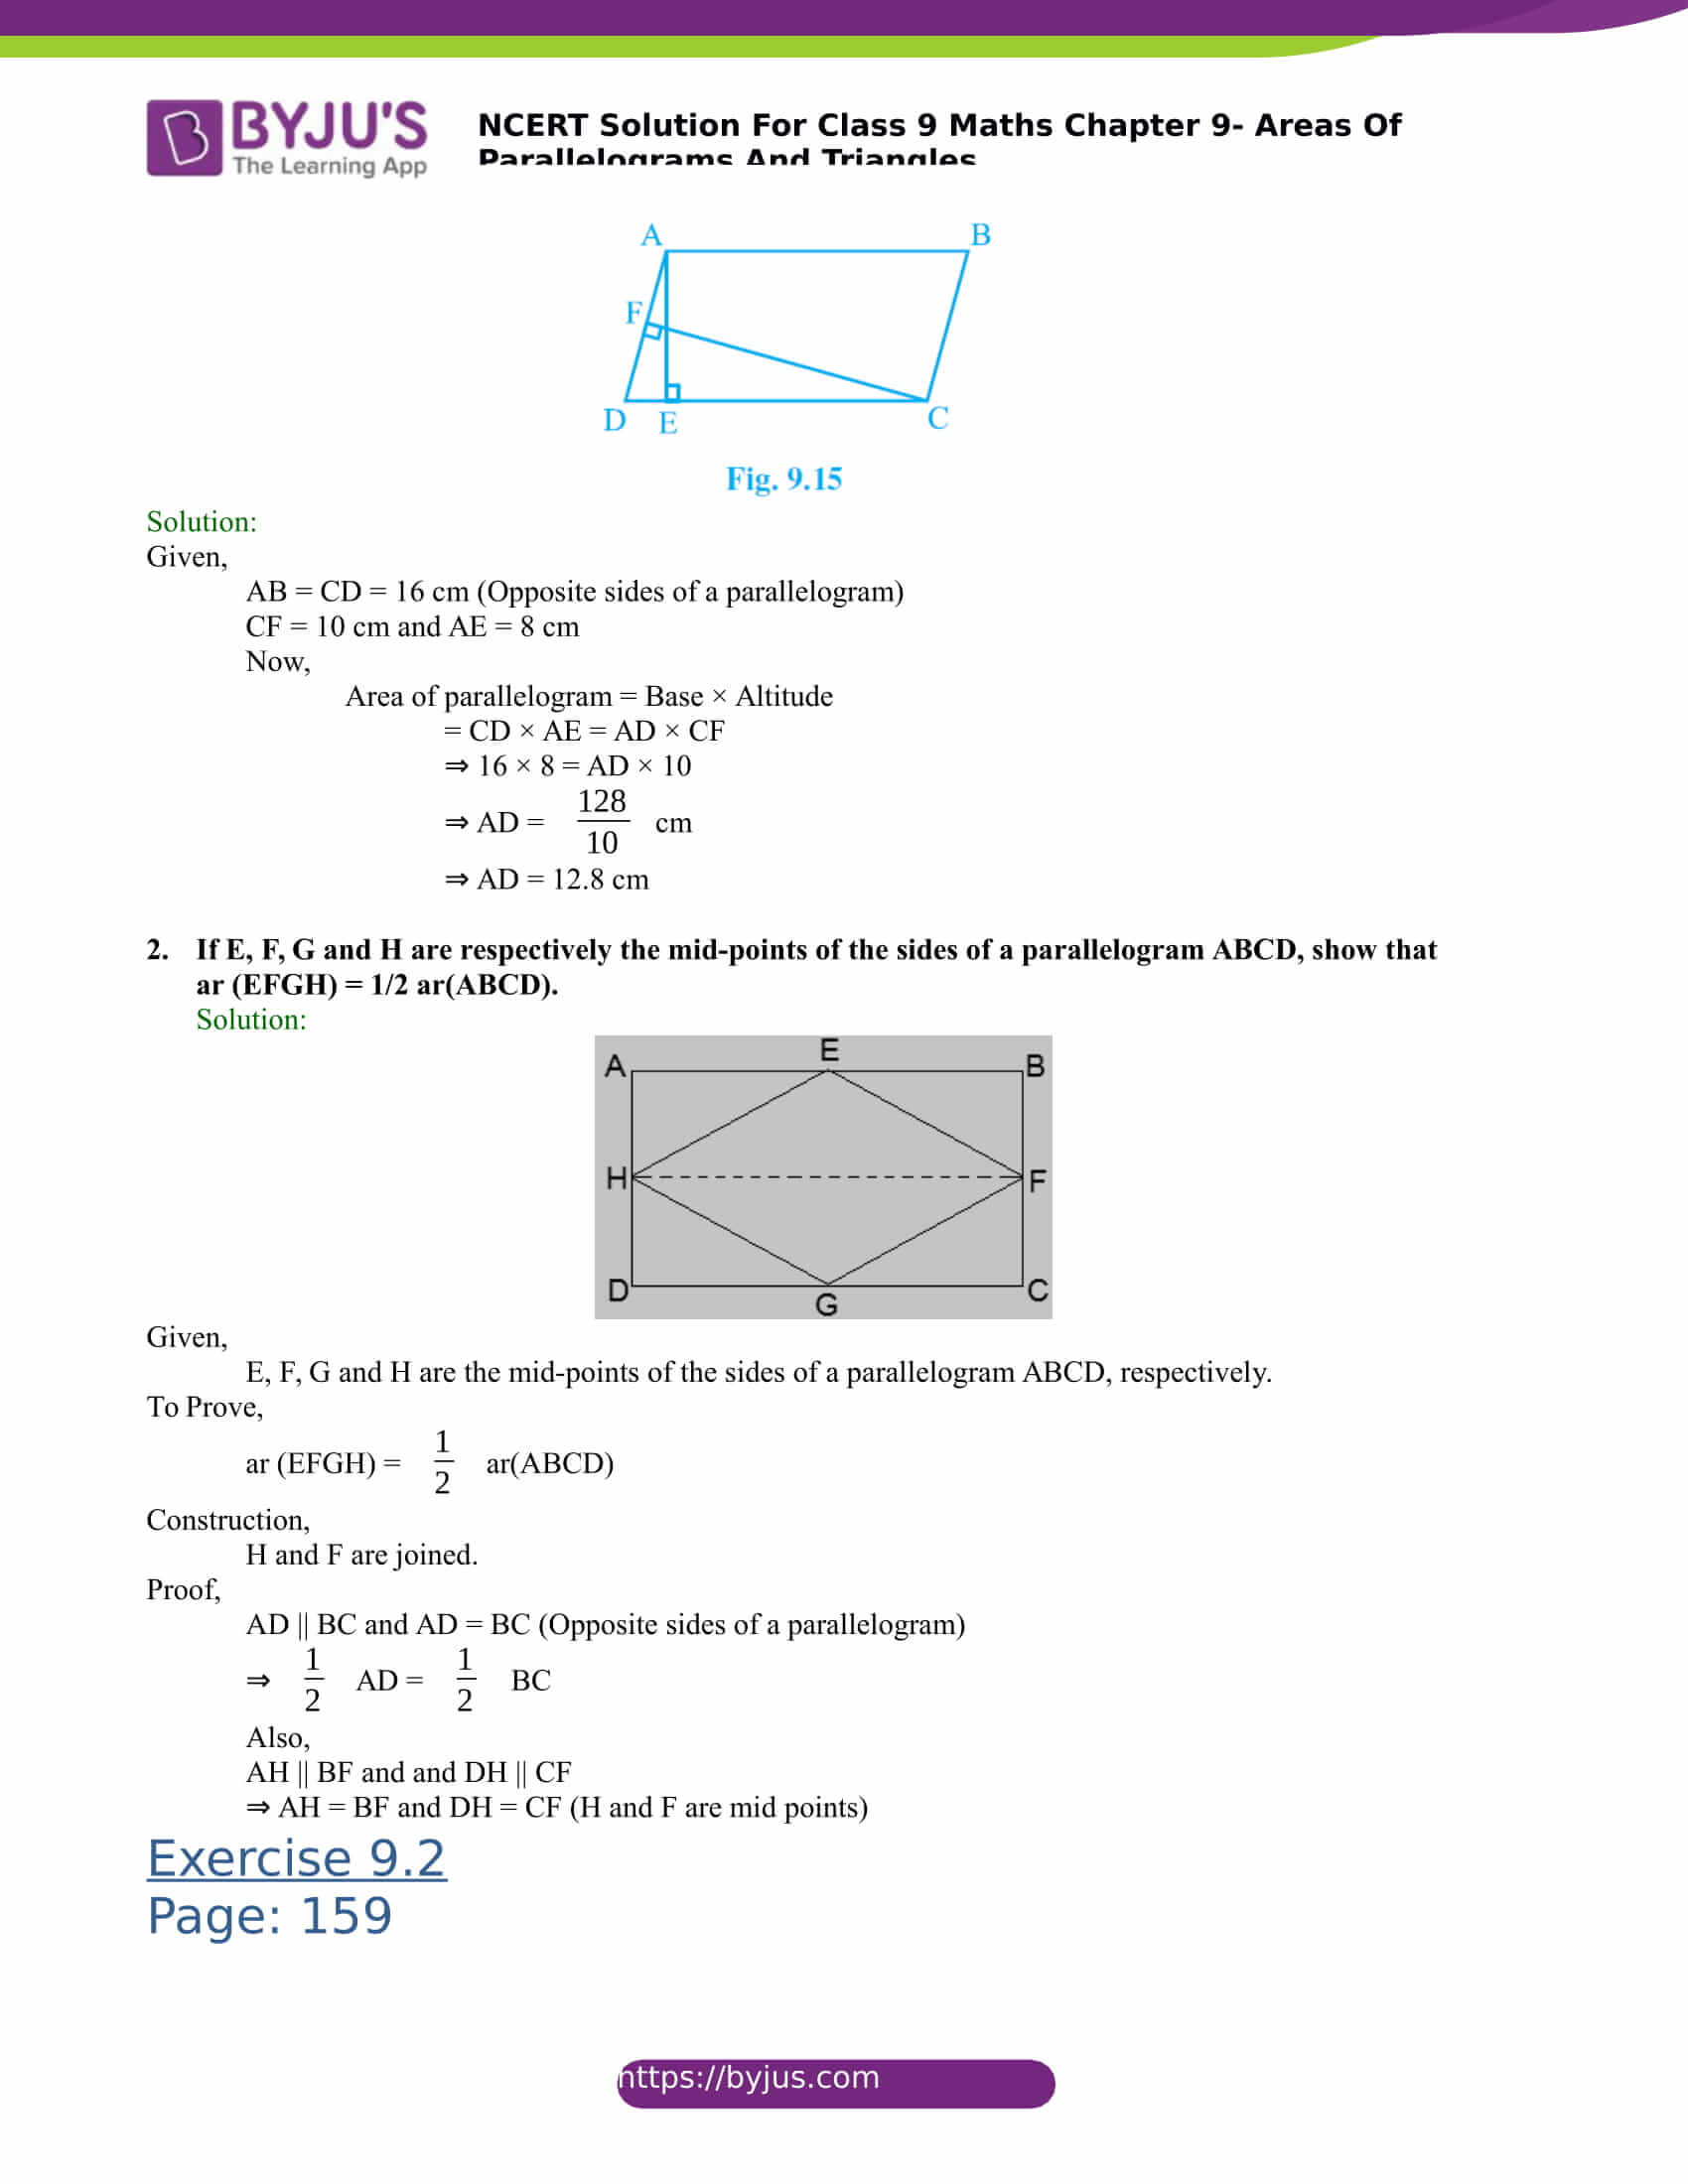 NCERT Solutions for class 9 Maths Chapter 9 Areas of parallelograms and triangles Part 2